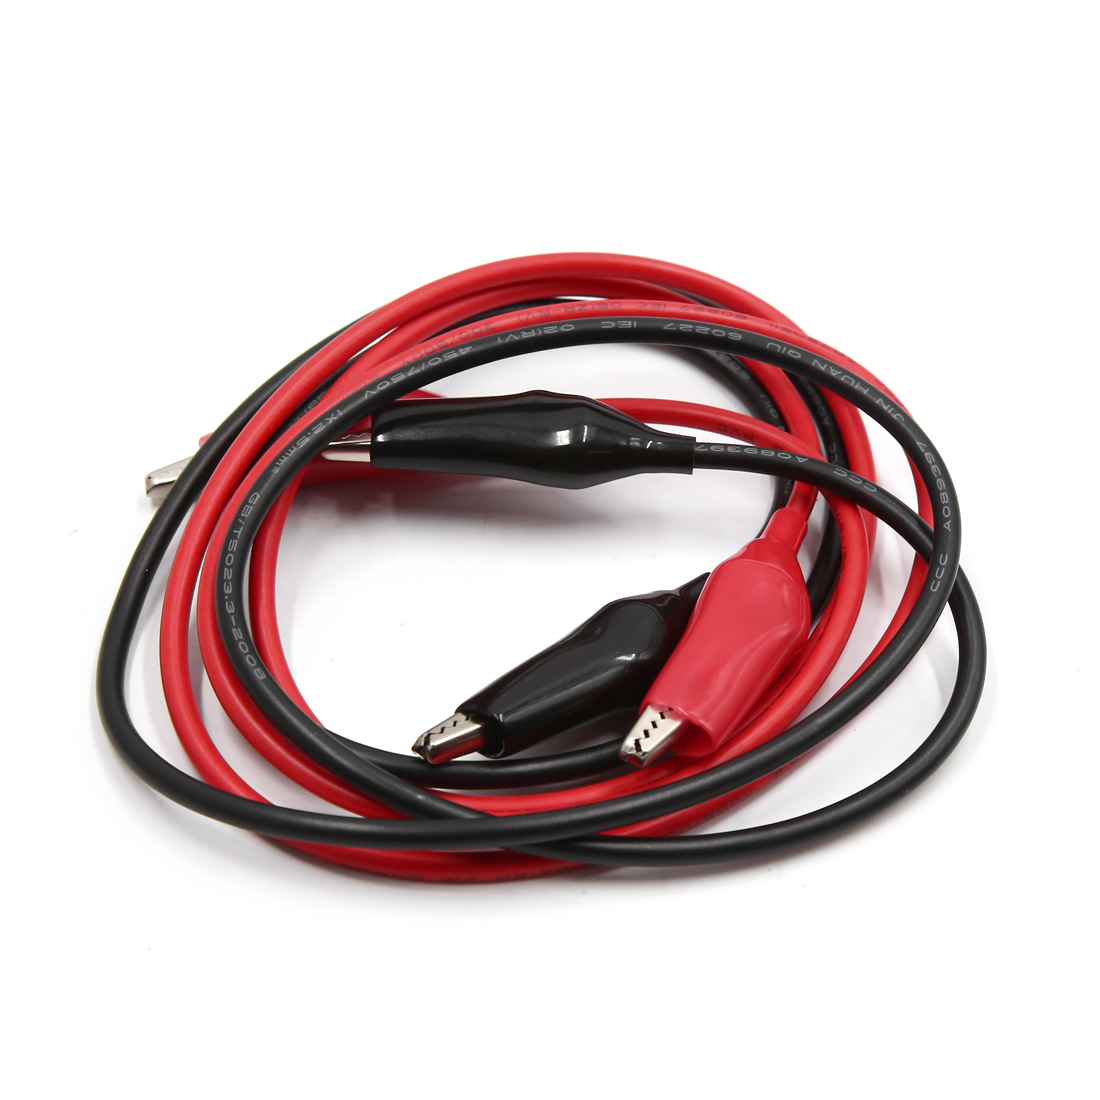 2pcs 1.05M Red Black Car Battery Insulated Test Clips Wiring Alligator Clip